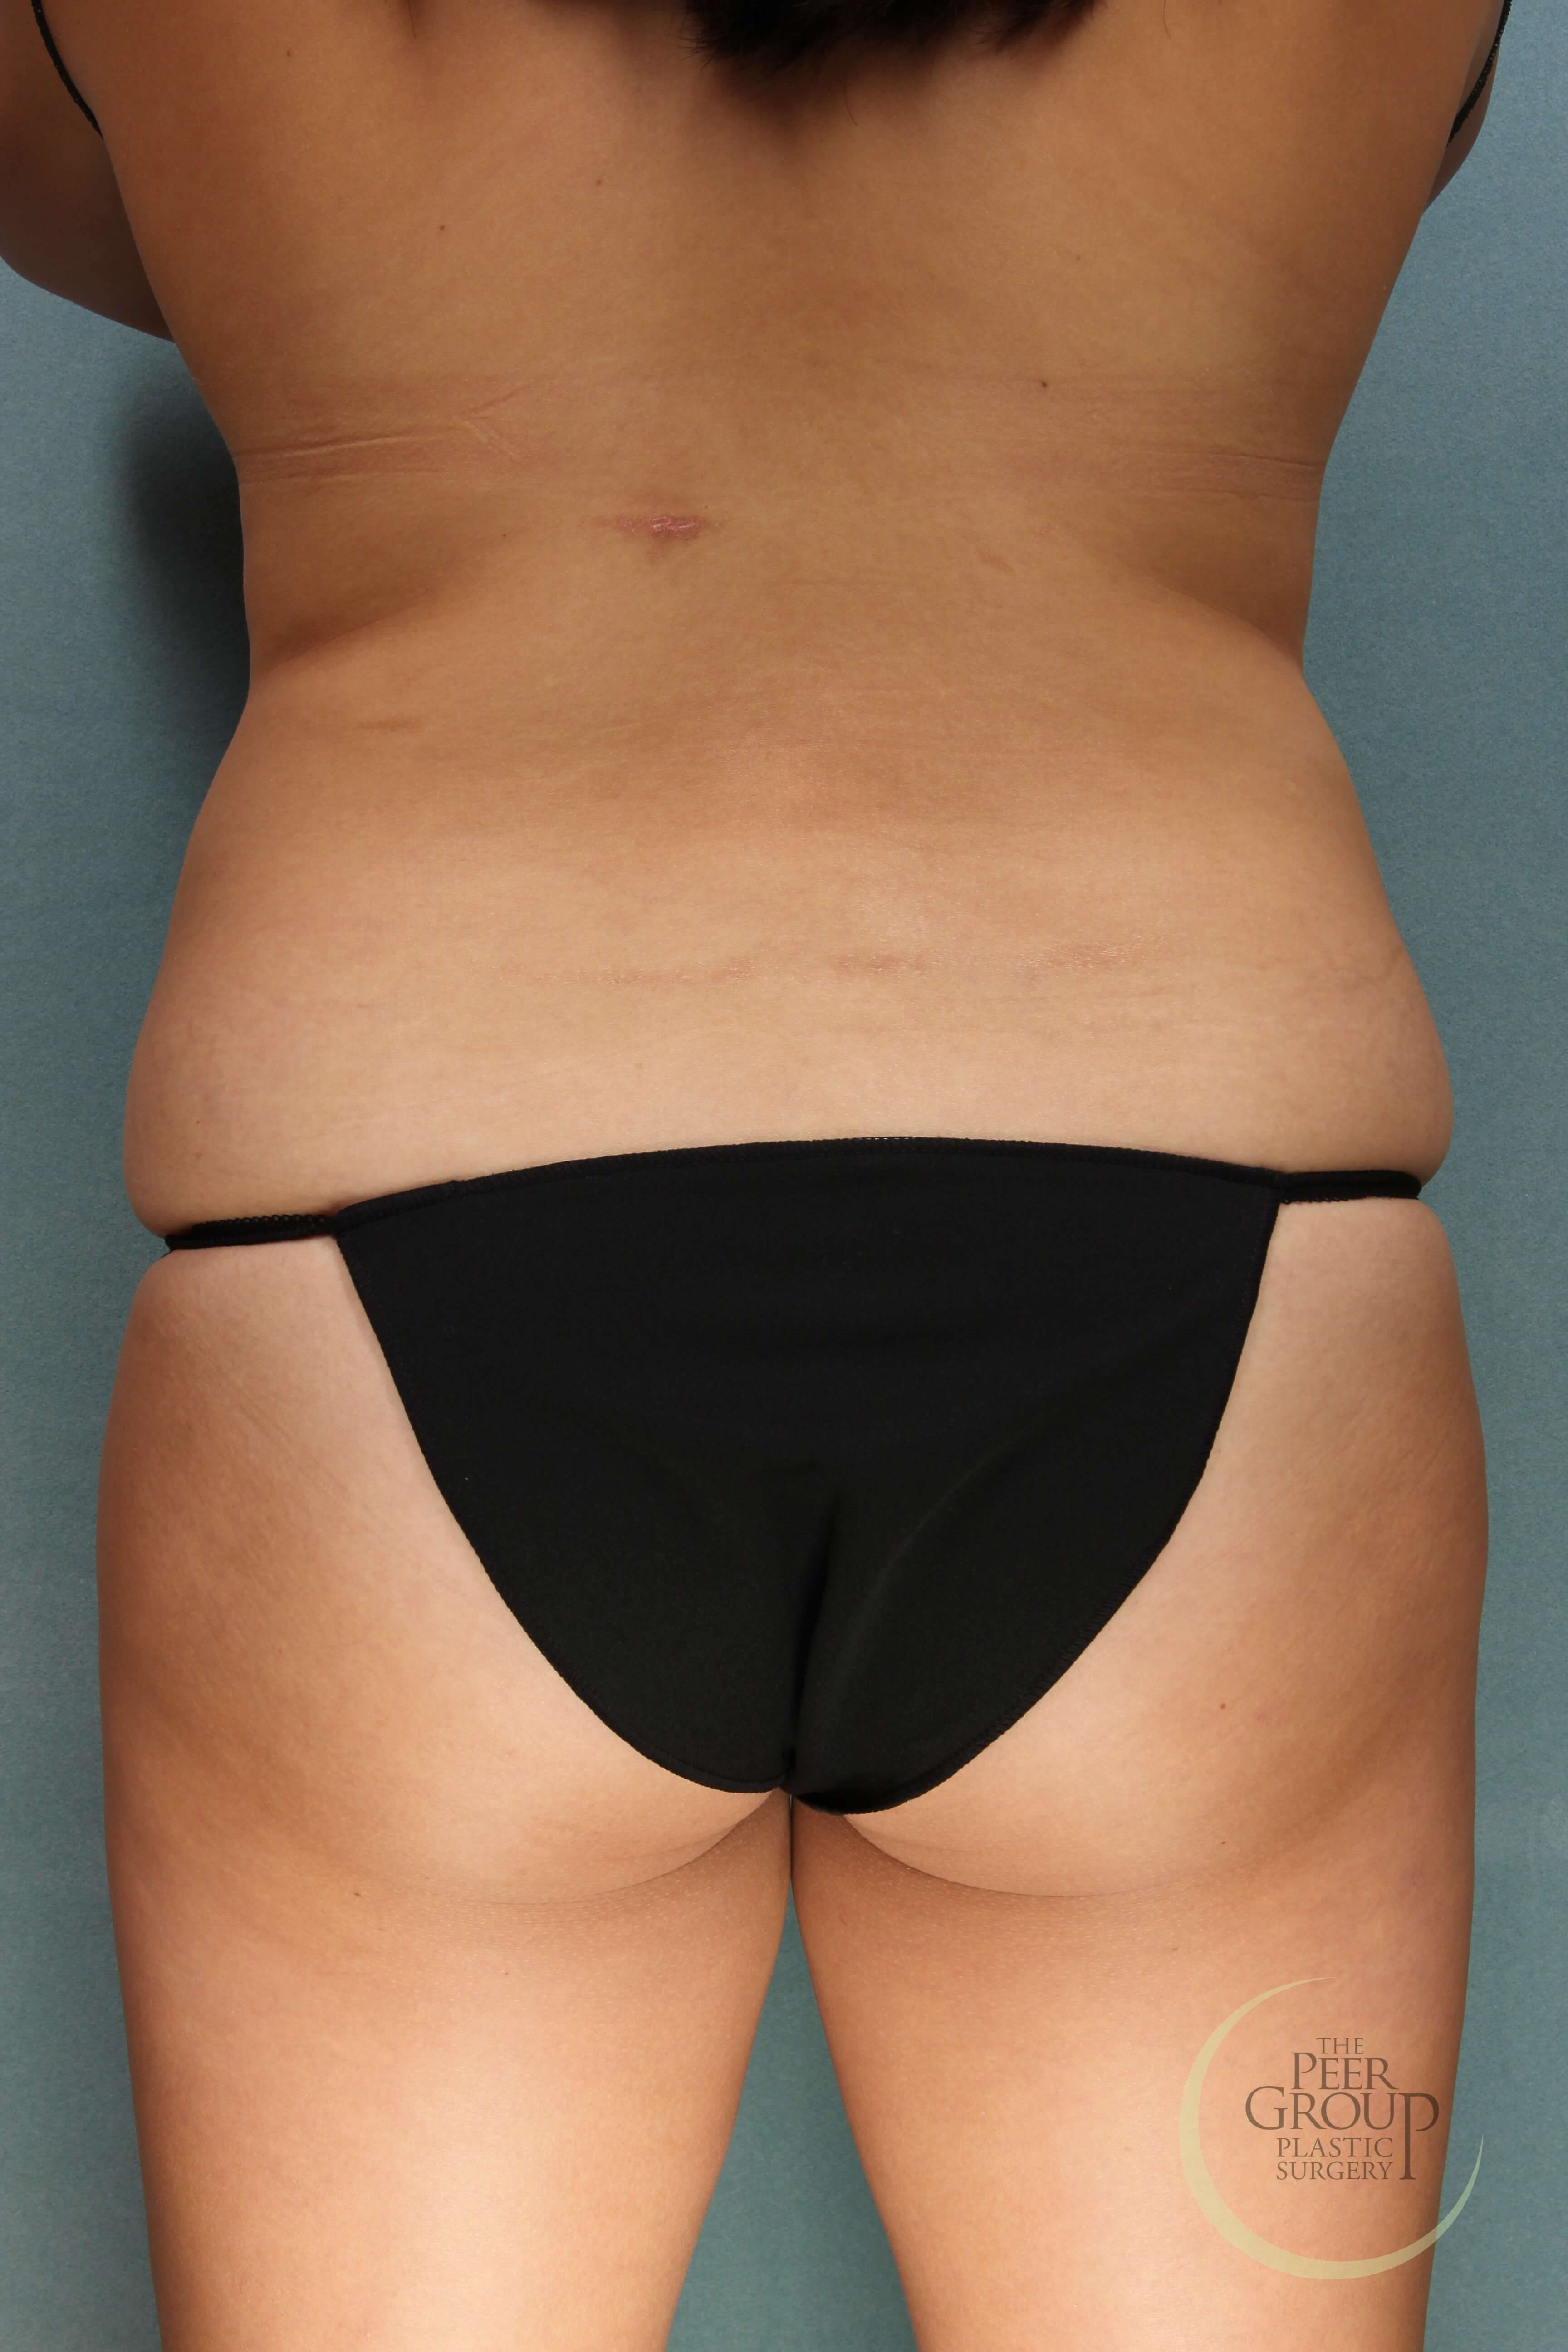 NJ CoolSculpting Side View After